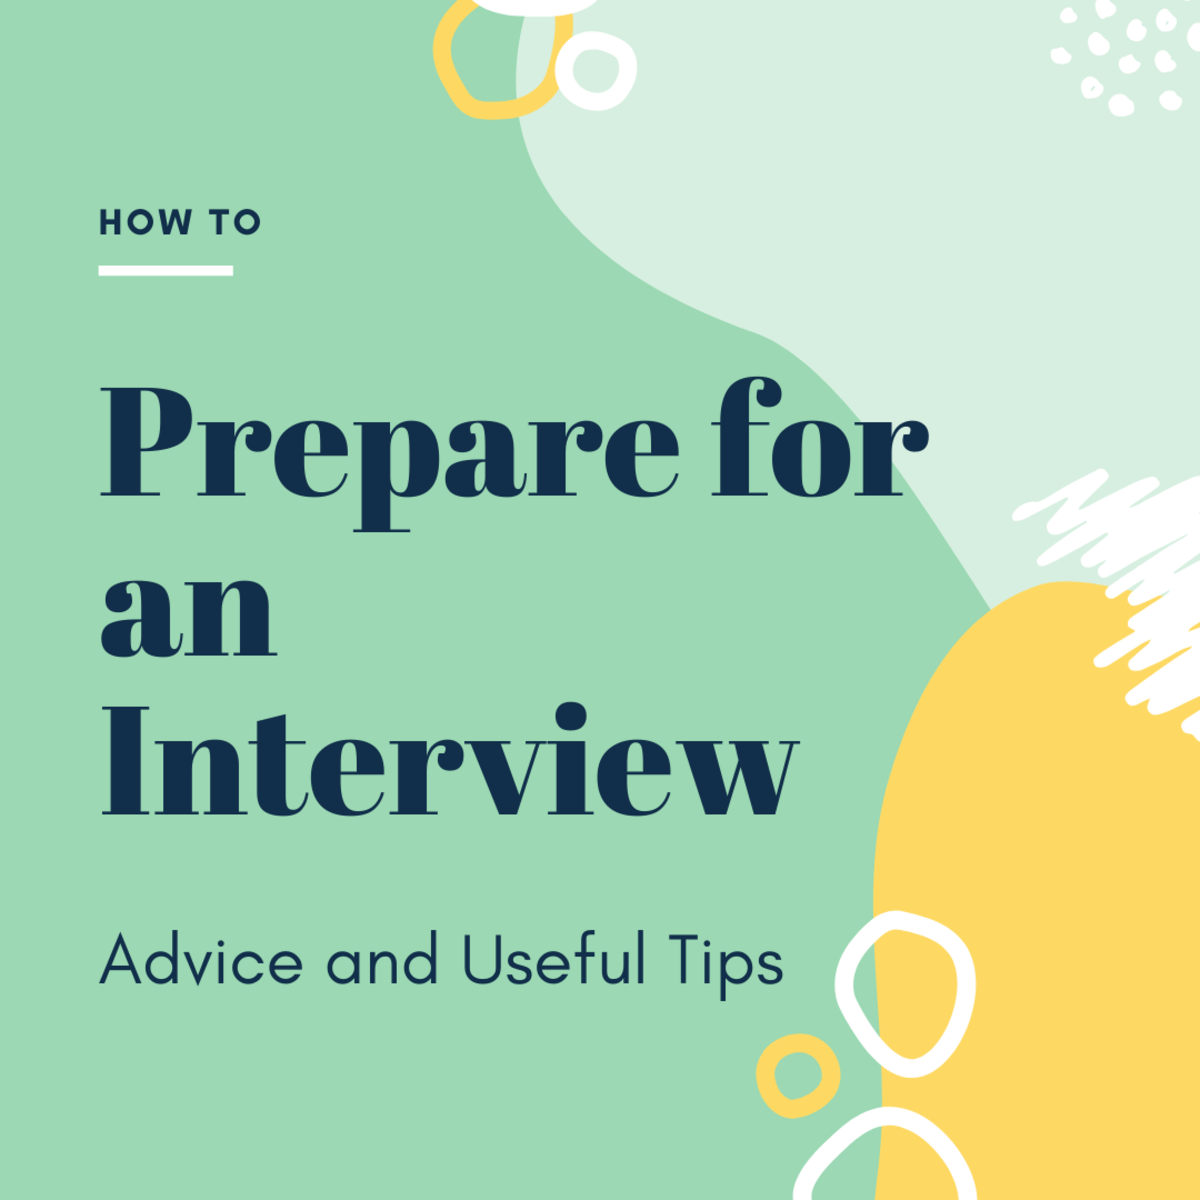 Read on to learn how to prepare for an interview with these eight tips.